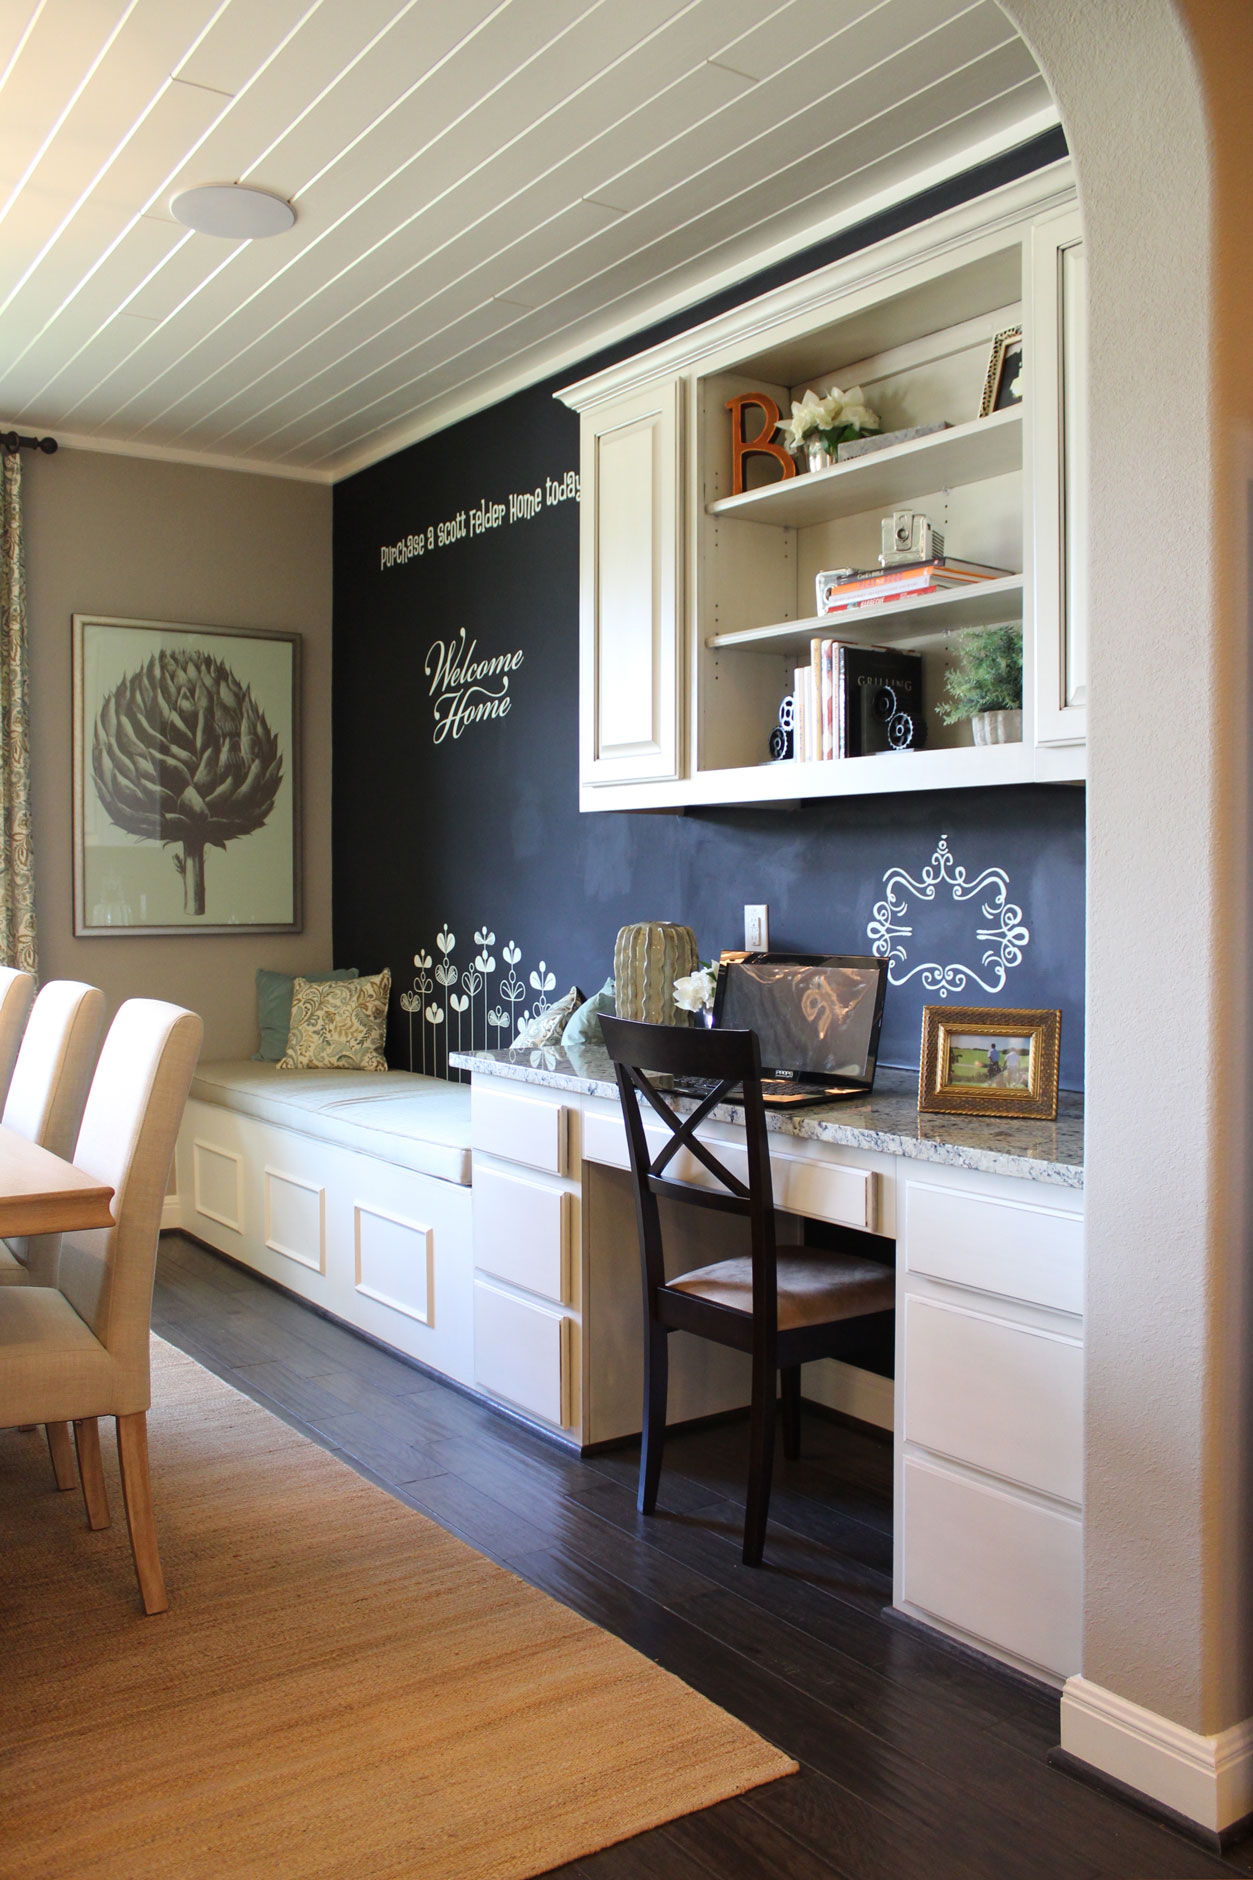 Built-in kitchen desk with chalkboard wall